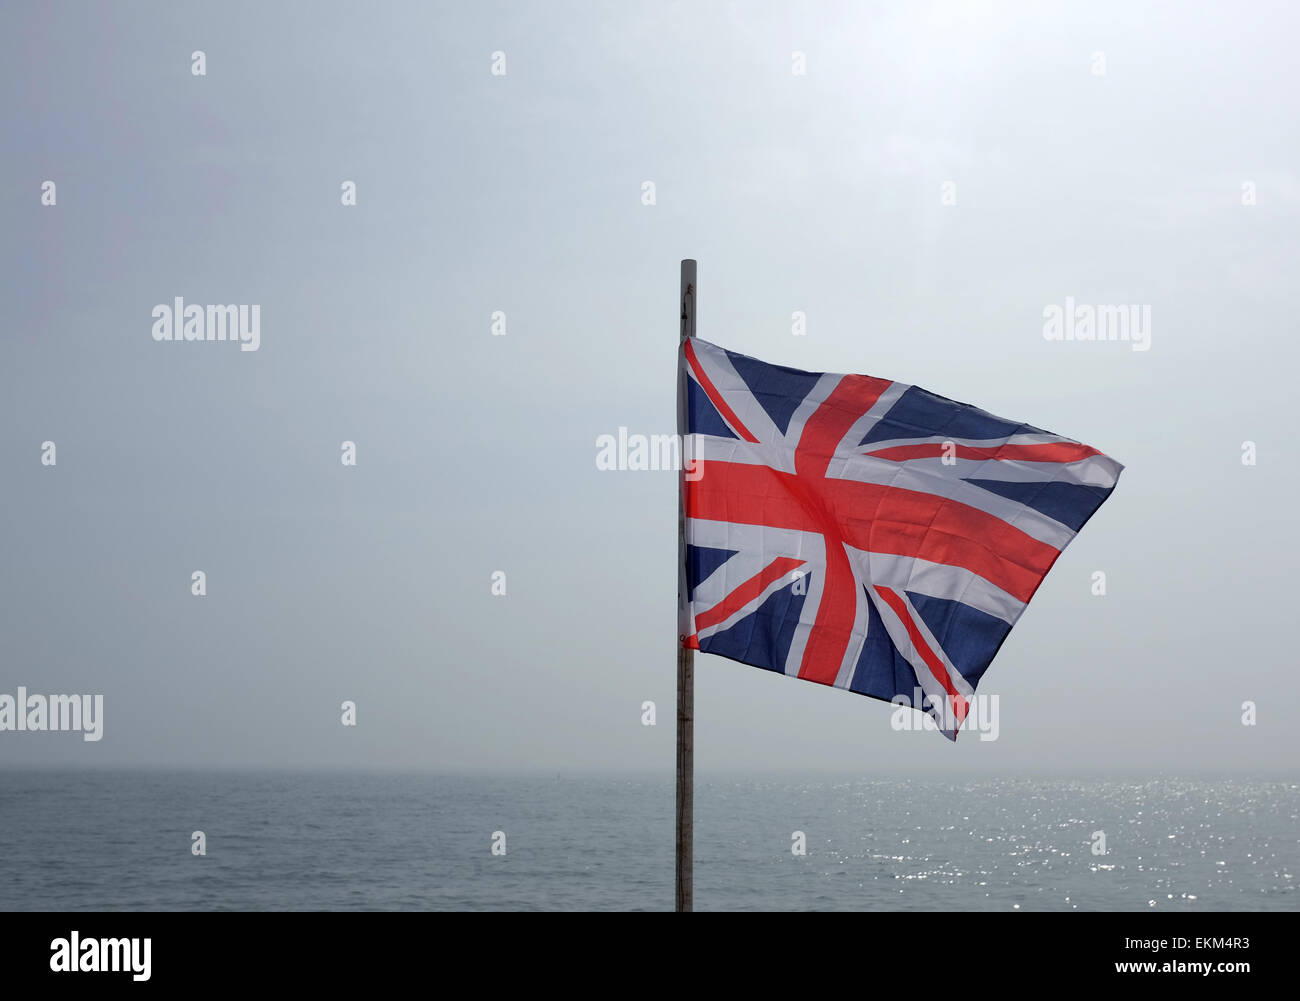 Union Flag flying against a background of sea and sky - Stock Image